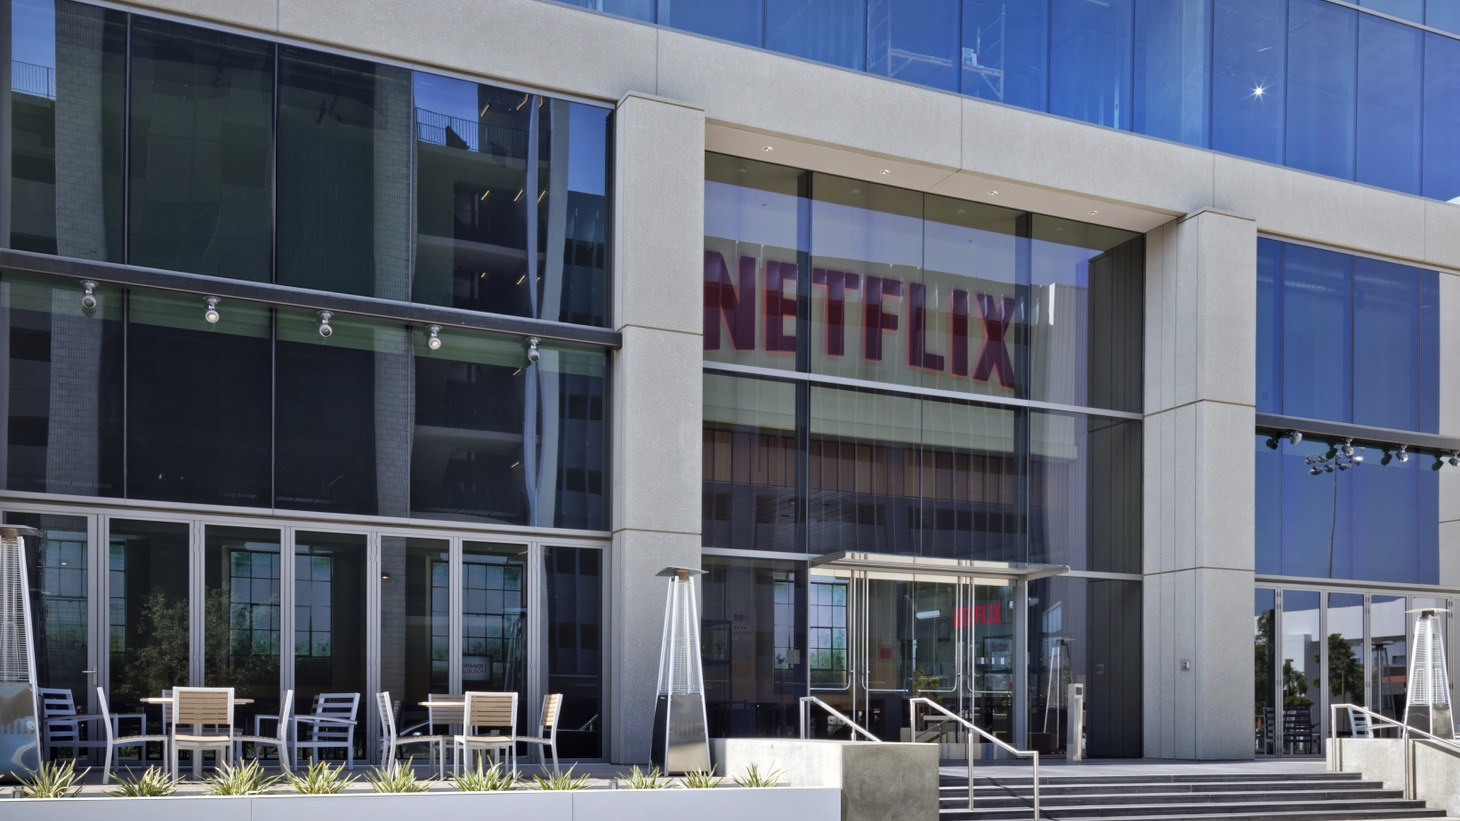 The Netflix headquarters in Los Angeles. Co-CEO Ted Sarandos says he sees his company as a Hollywood outsider, but it just landed 35 Oscar nominations.